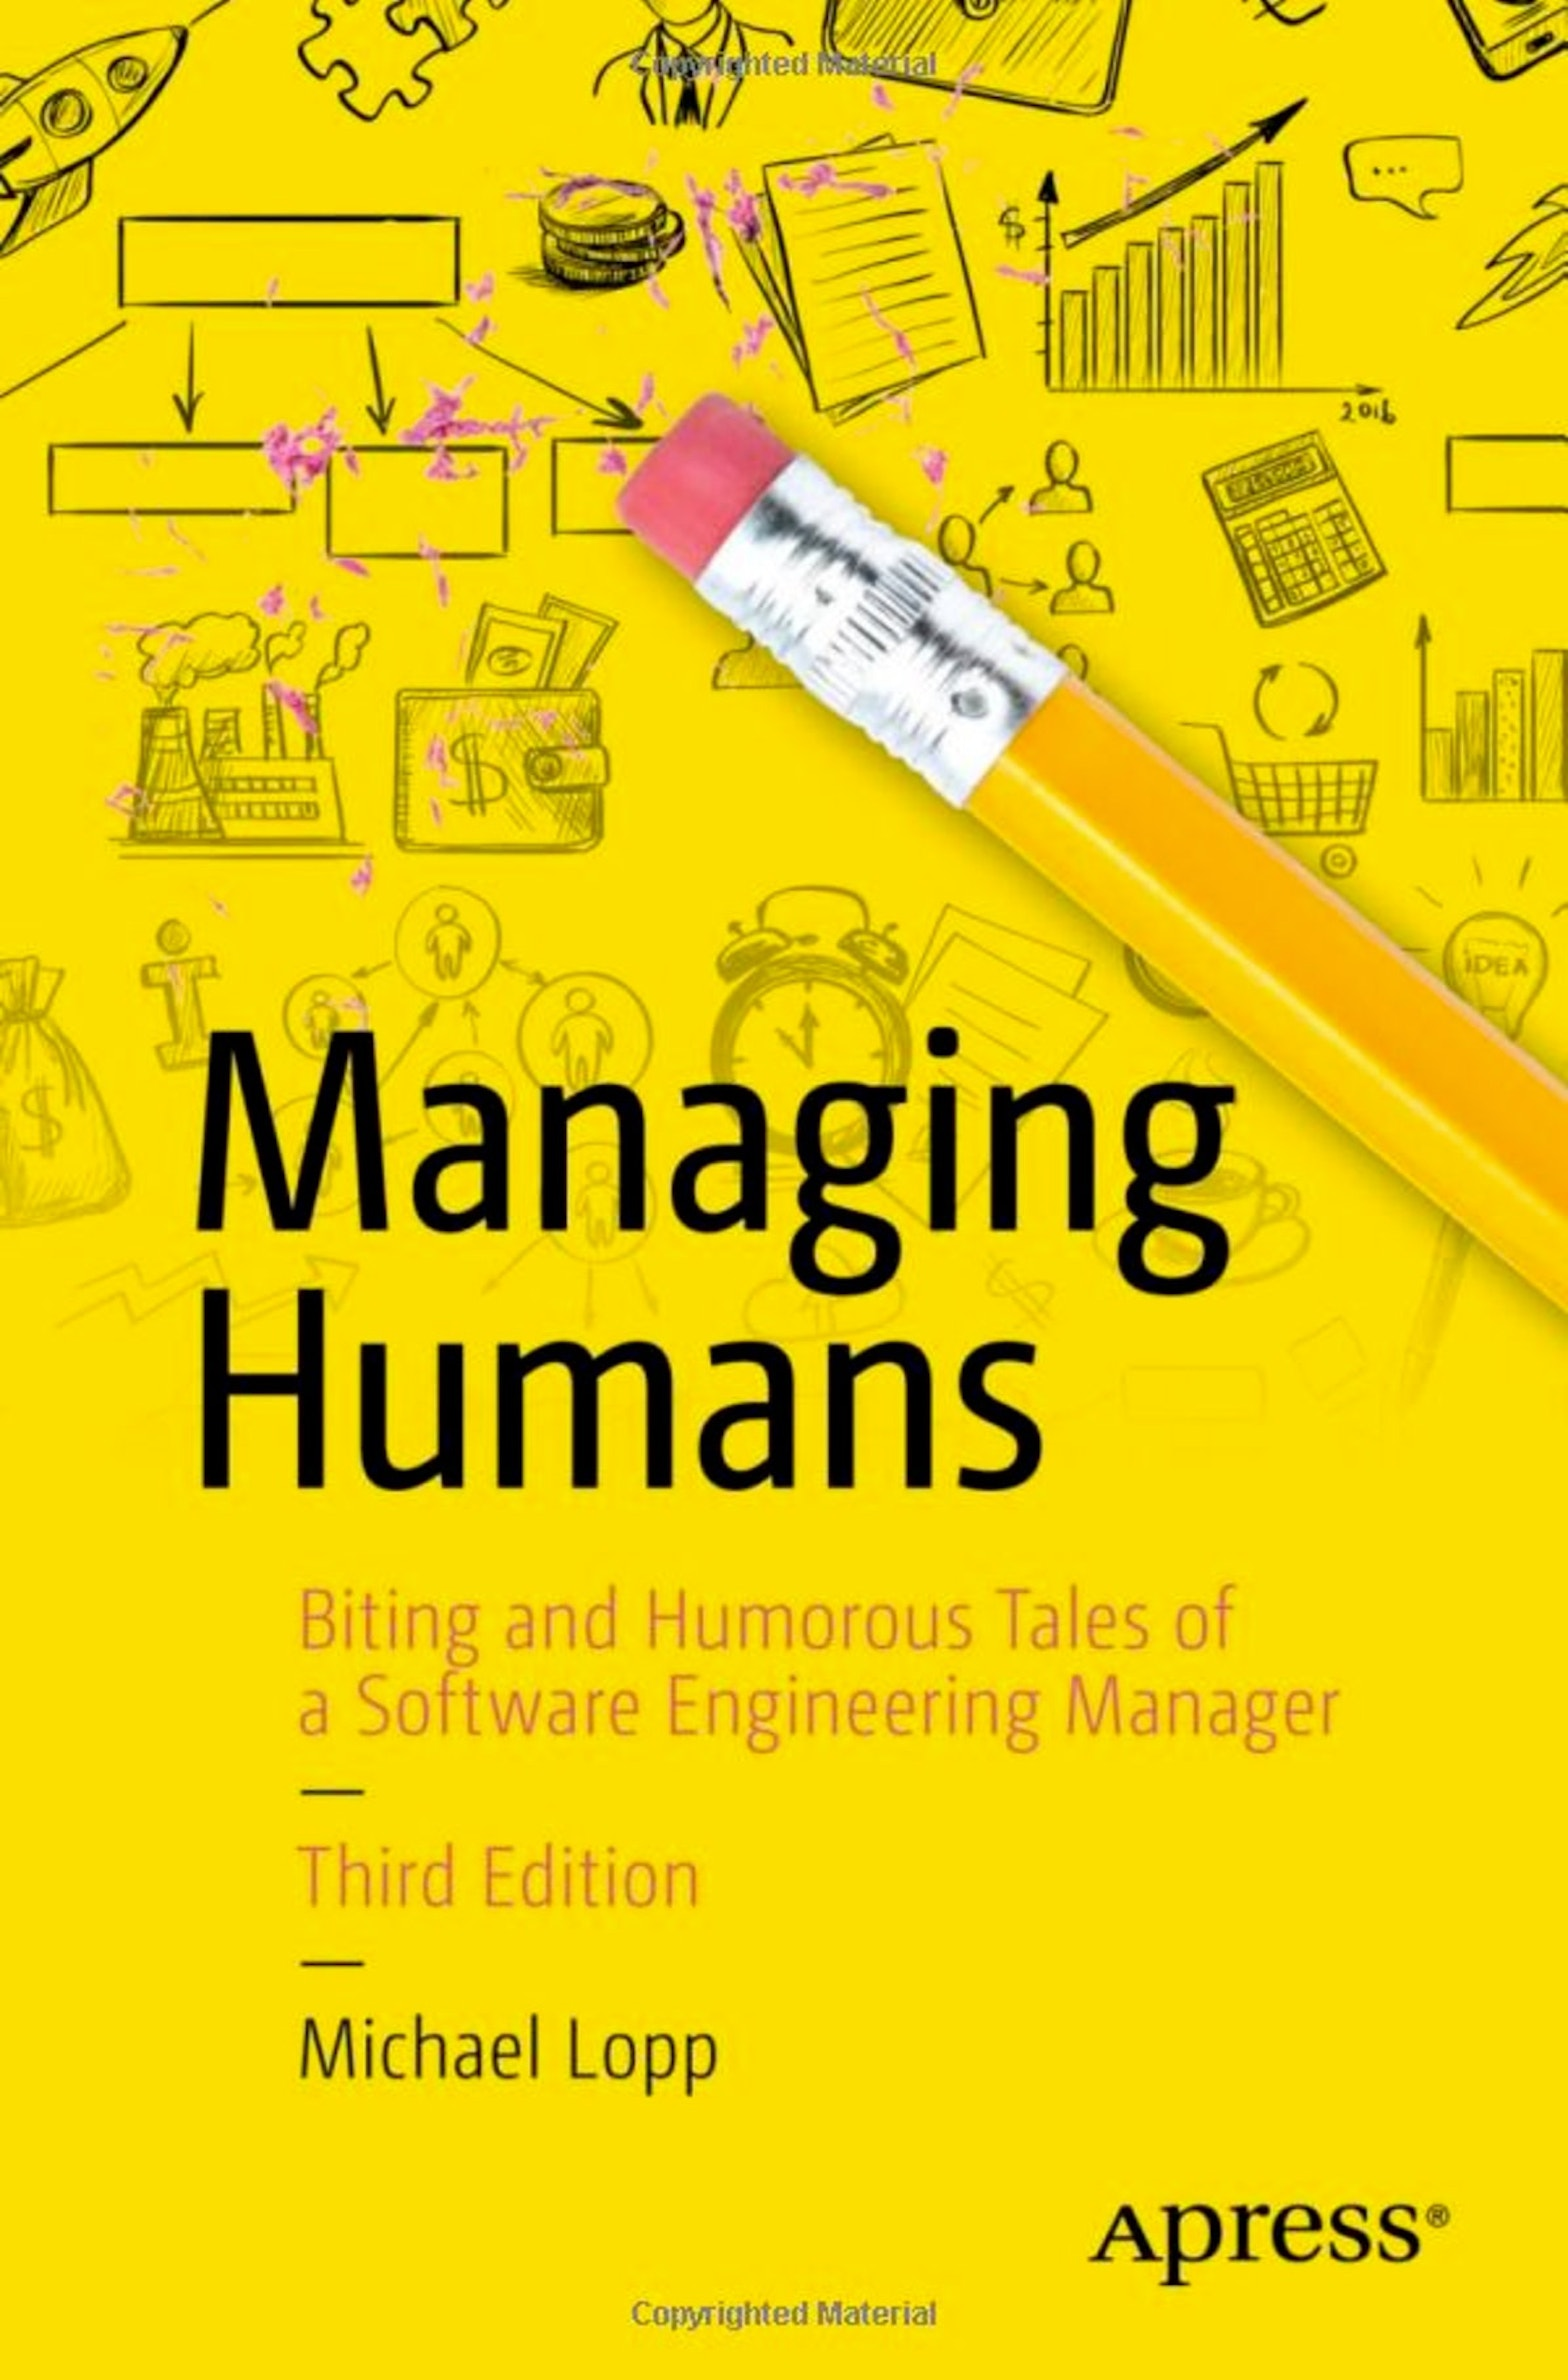 The cover of Managing Humans, by Michael Lopp